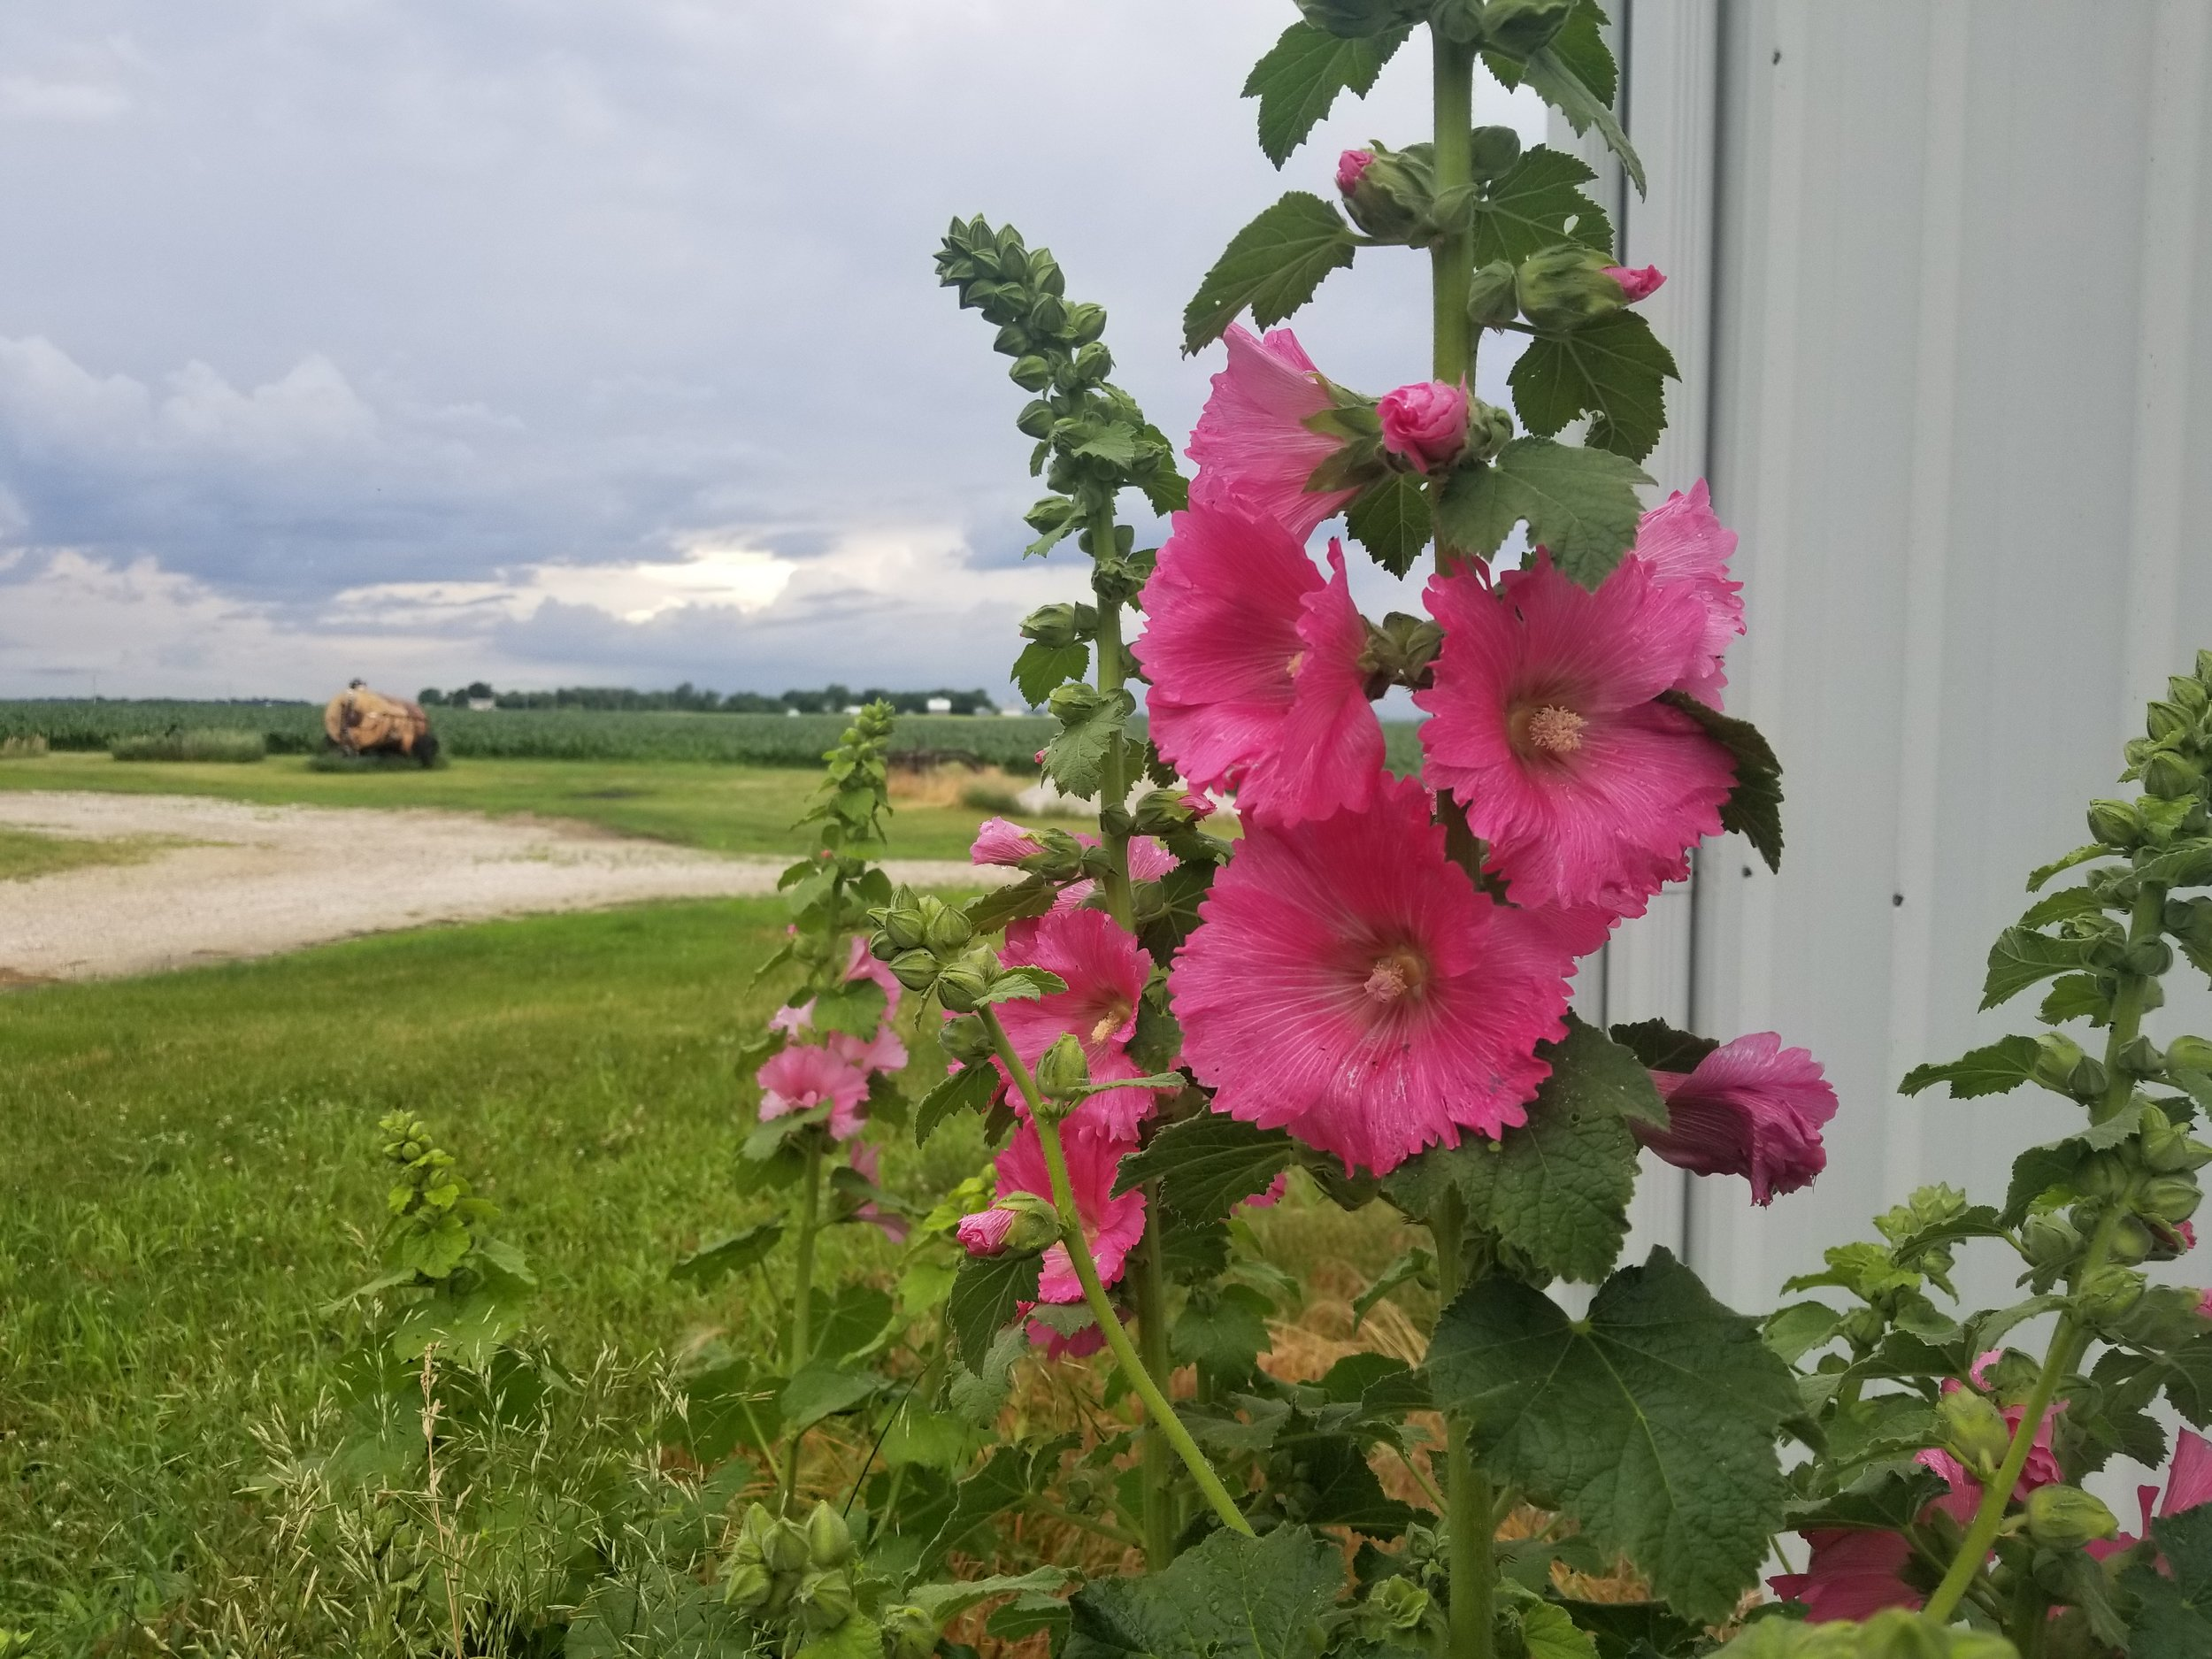 Hollyhocks bloom throughout the summer. Photo credit: Darcy Dougherty Maulsby